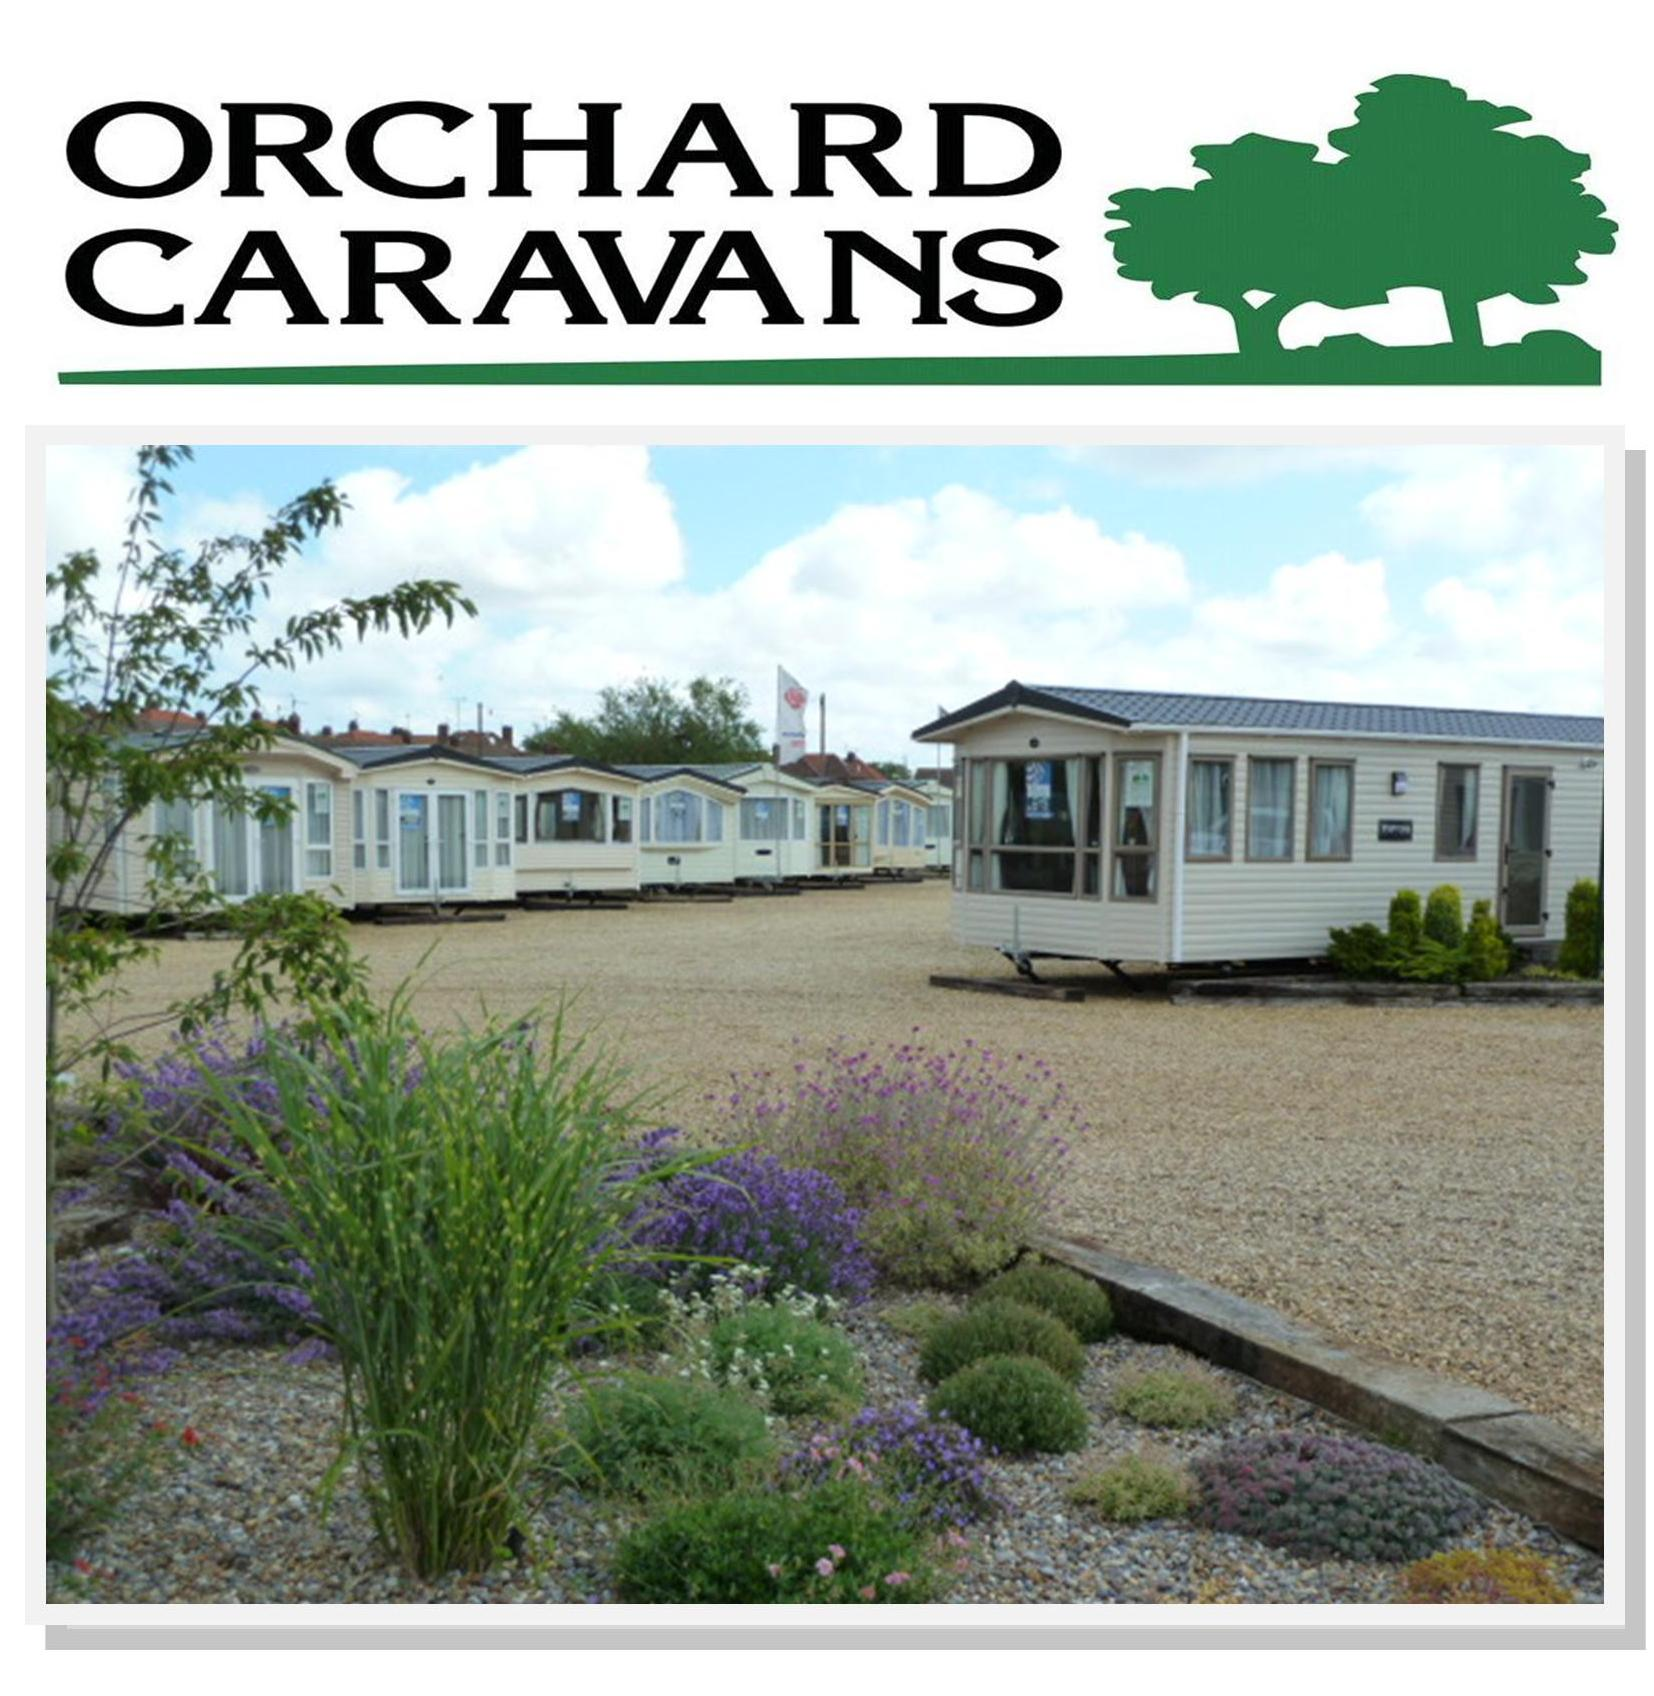 Orchard Caravans - Wells-next-the-Sea, Norfolk NR23 1LY - 01328 710394 | ShowMeLocal.com